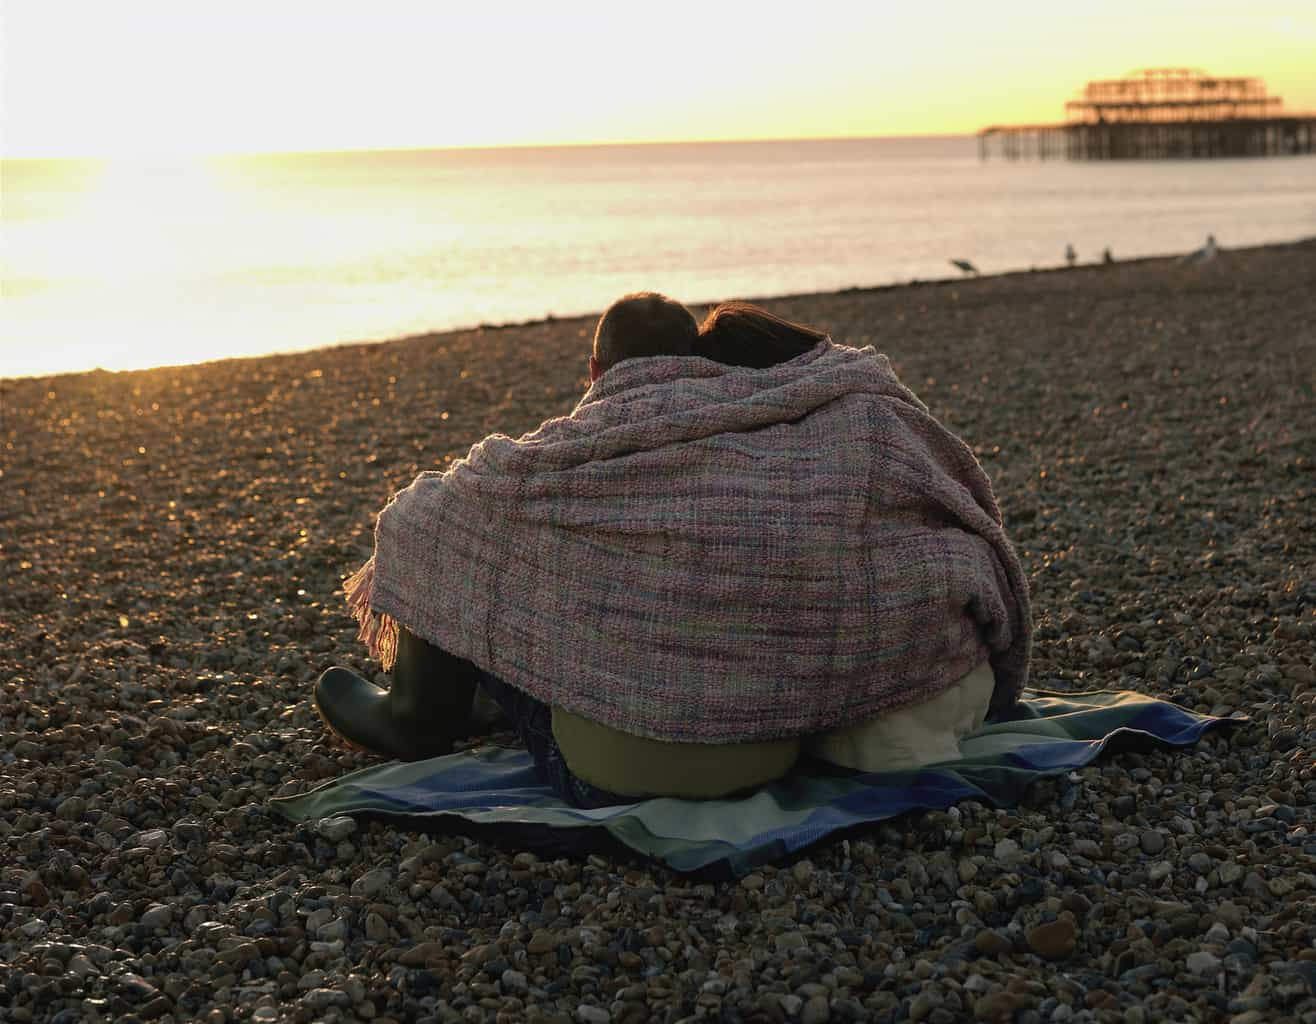 romantic activities brighton